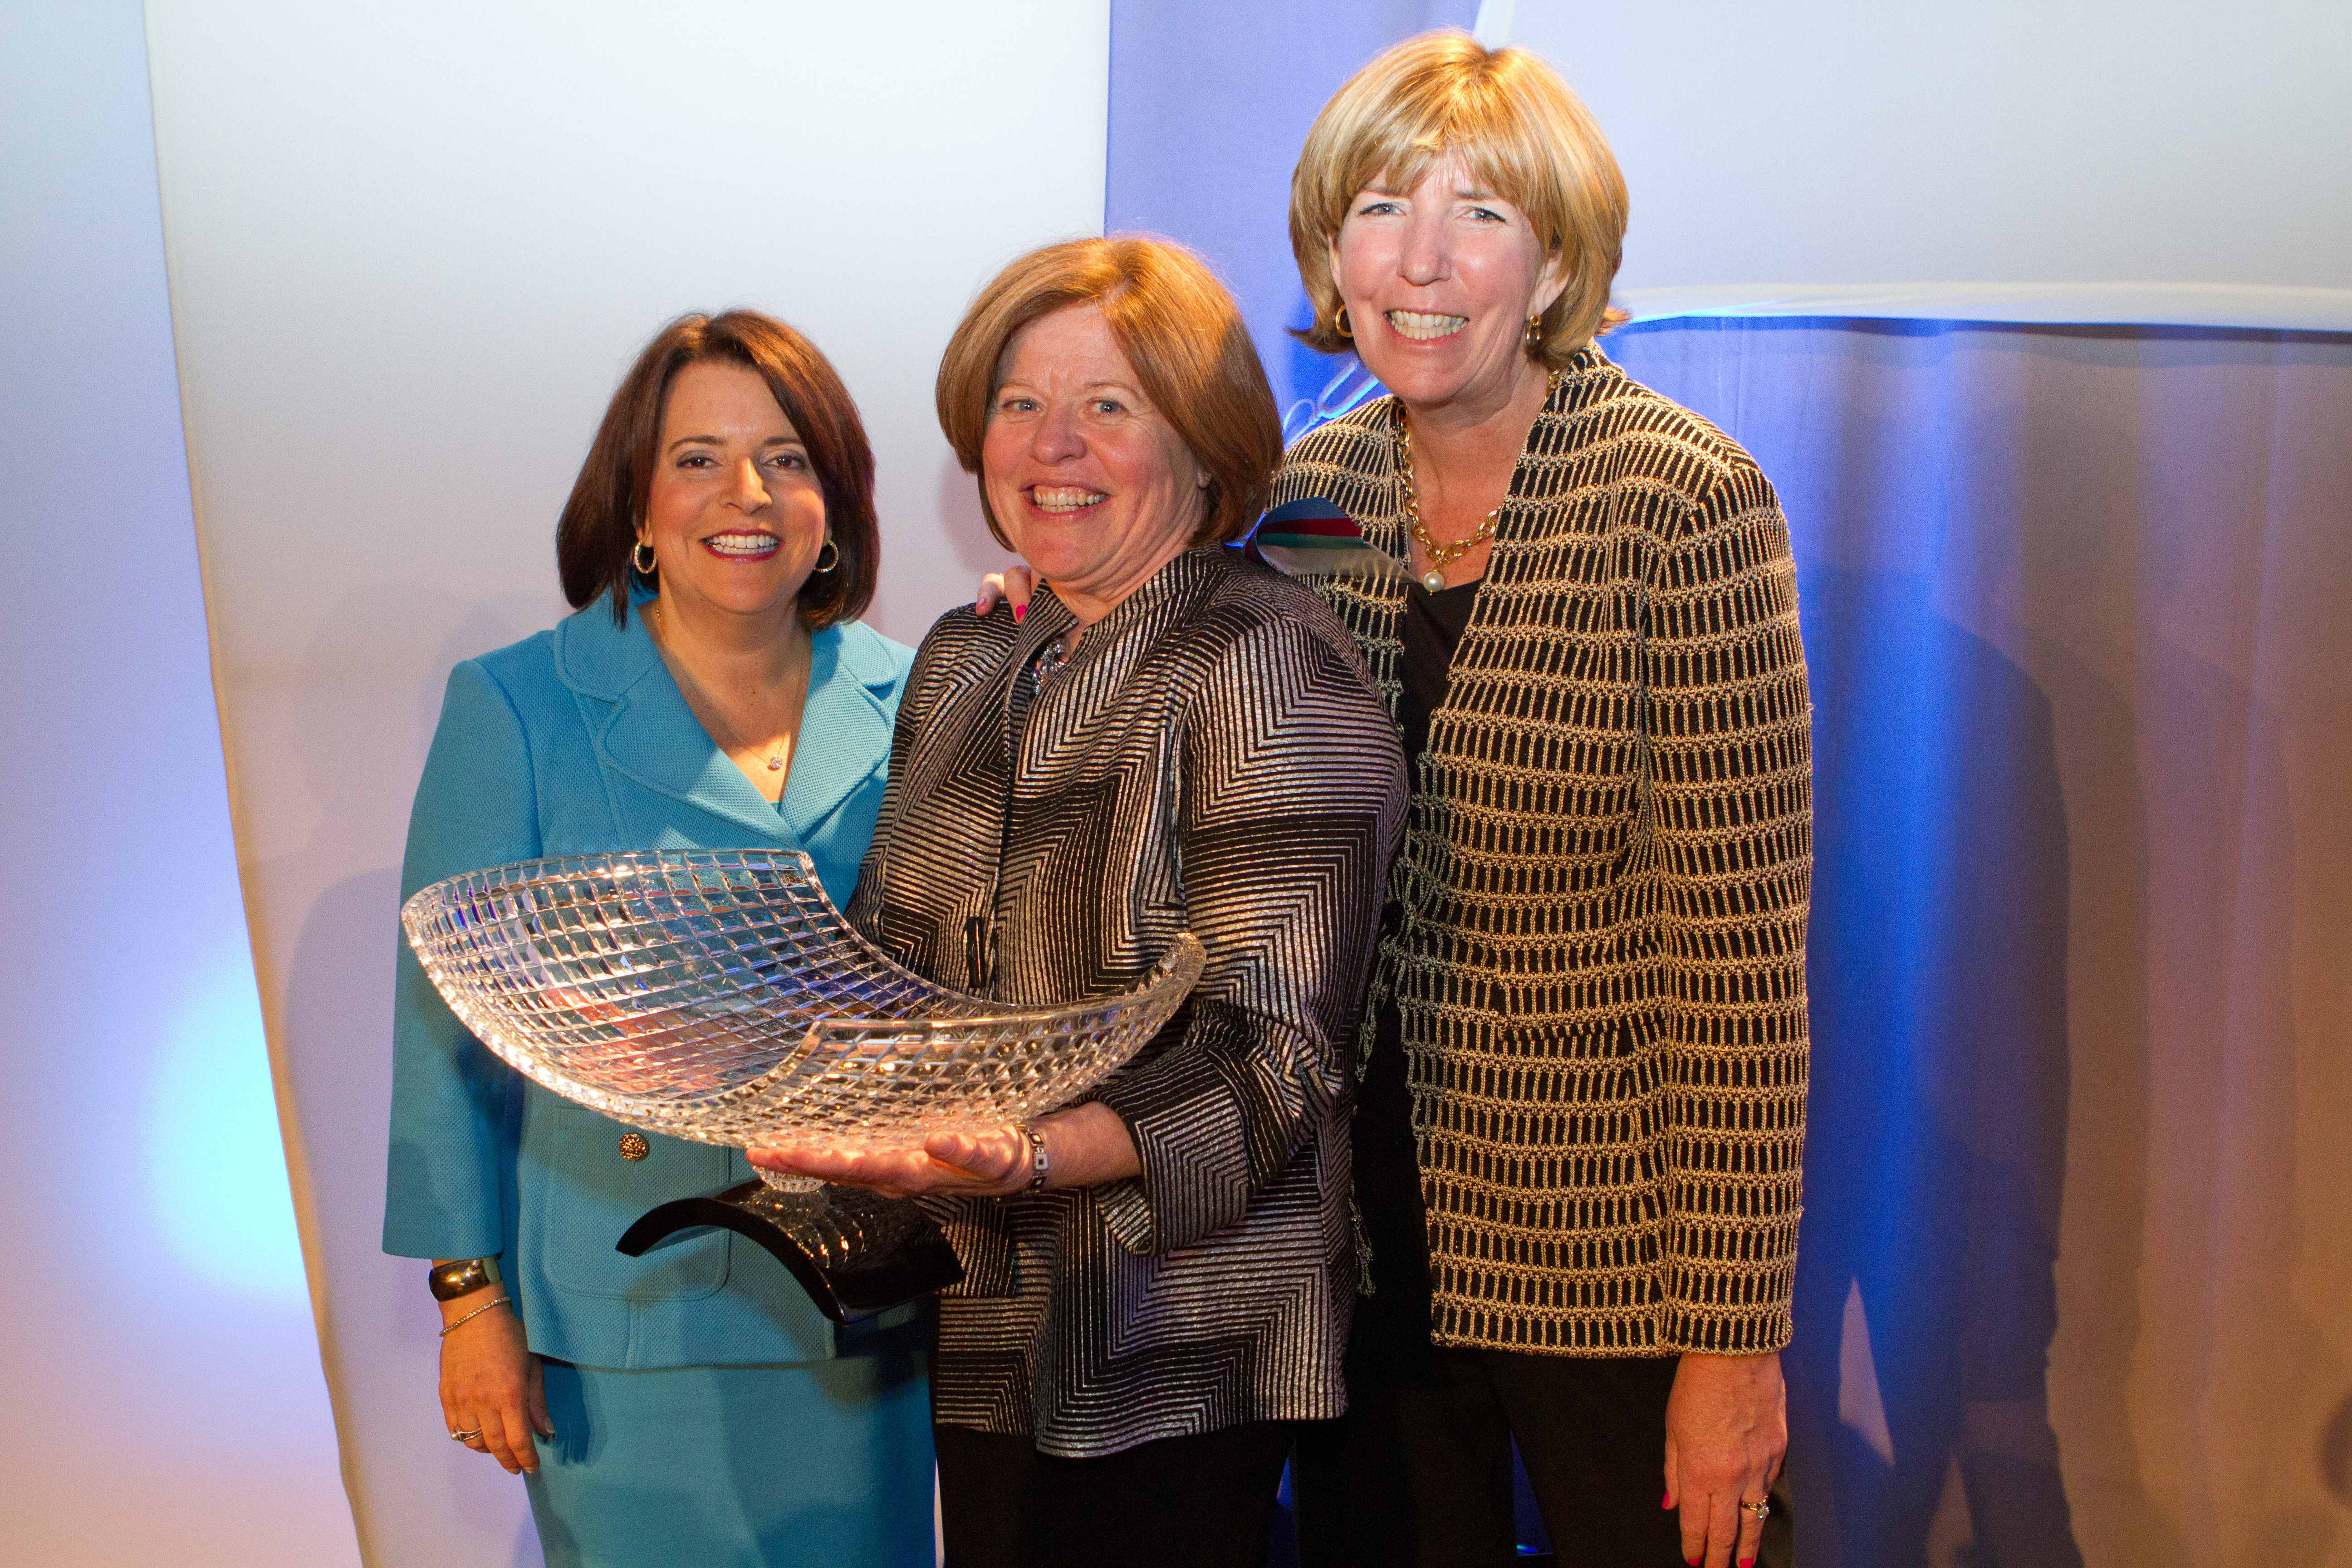 Melissa Langa (center), of the Boston law firm of Bove & Langa, was named 2014 Estate Planner of the Year by the Boston Estate Planning Council (BEPC) and presented with the award by Judith Saxe, BEPC president (right) and Deirdre Prescott, incoming president during the Annual Gala held May 22. (Photo: Business Wire)